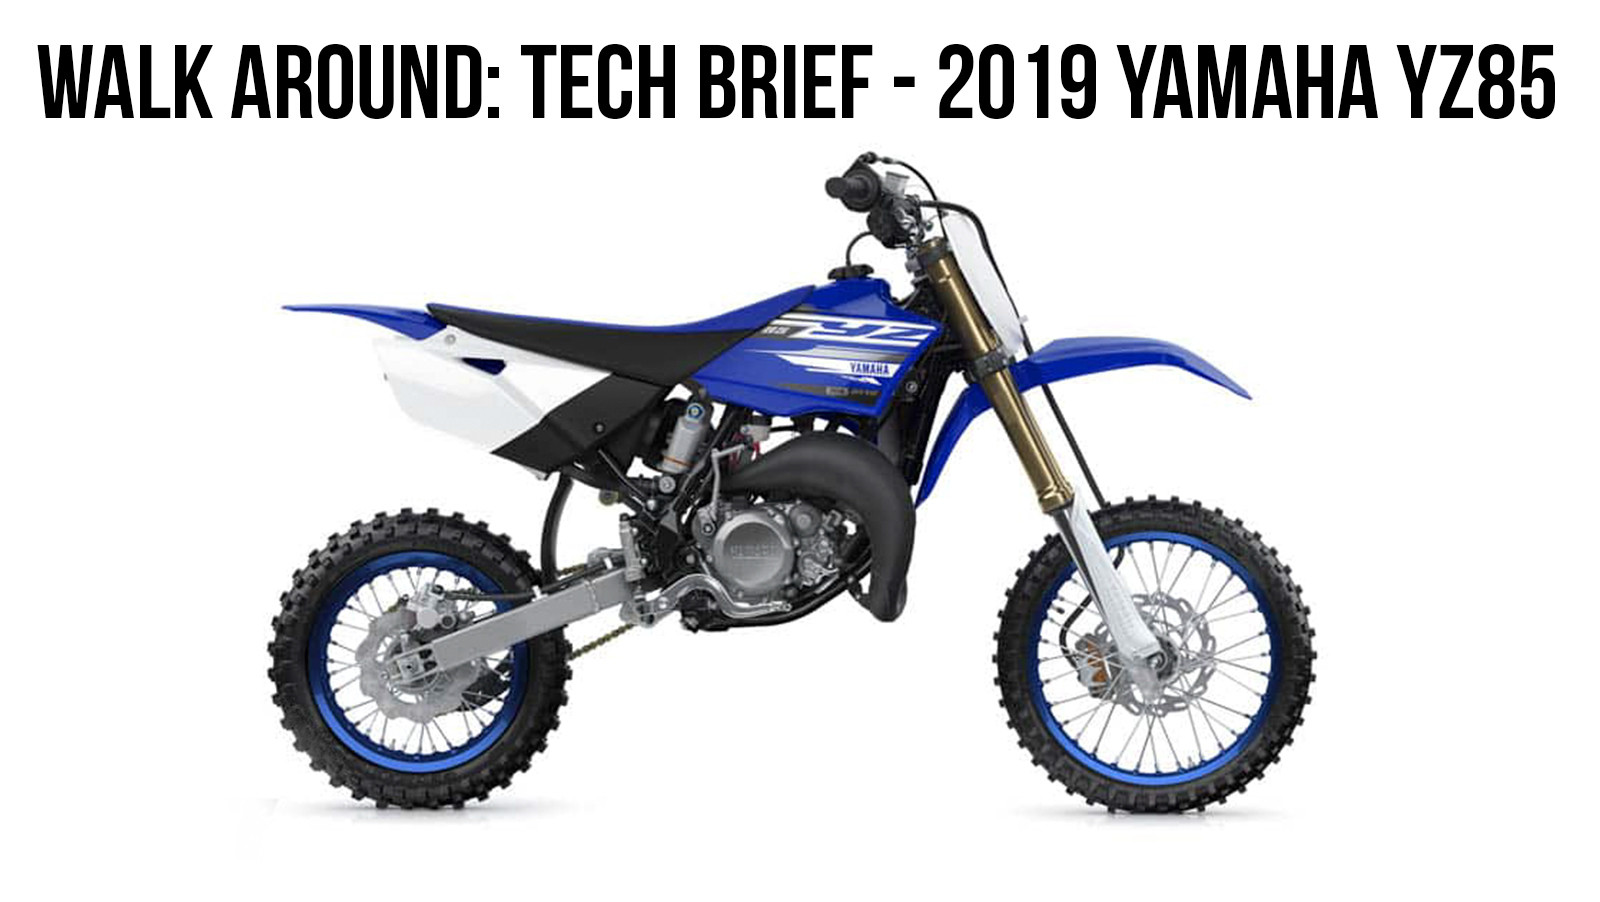 Walk-Around: Tech Brief on the 2019 Yamaha YZ85